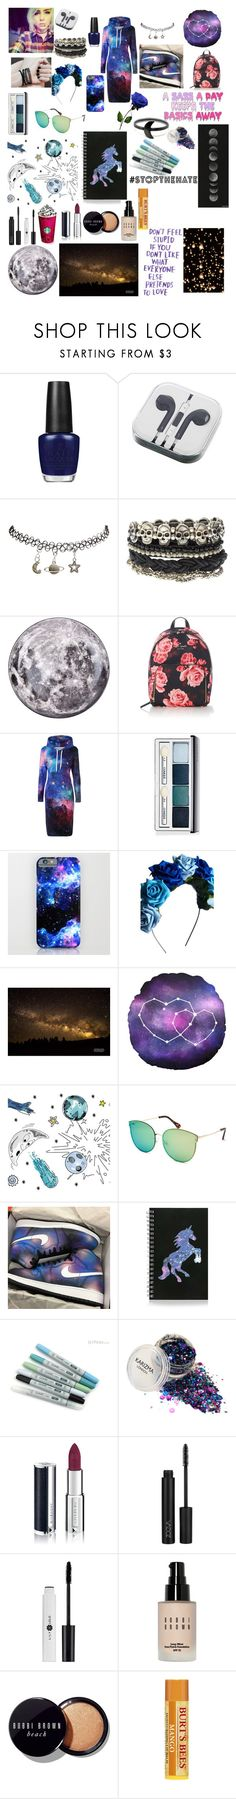 """""""star light, star bright"""" by snow-queen13 ❤ liked on Polyvore featuring OPI, PhunkeeTree, Wet Seal, ASOS, Seletti, Kate Spade, Clinique, Crown and Glory, Tempaper and Full Tilt"""